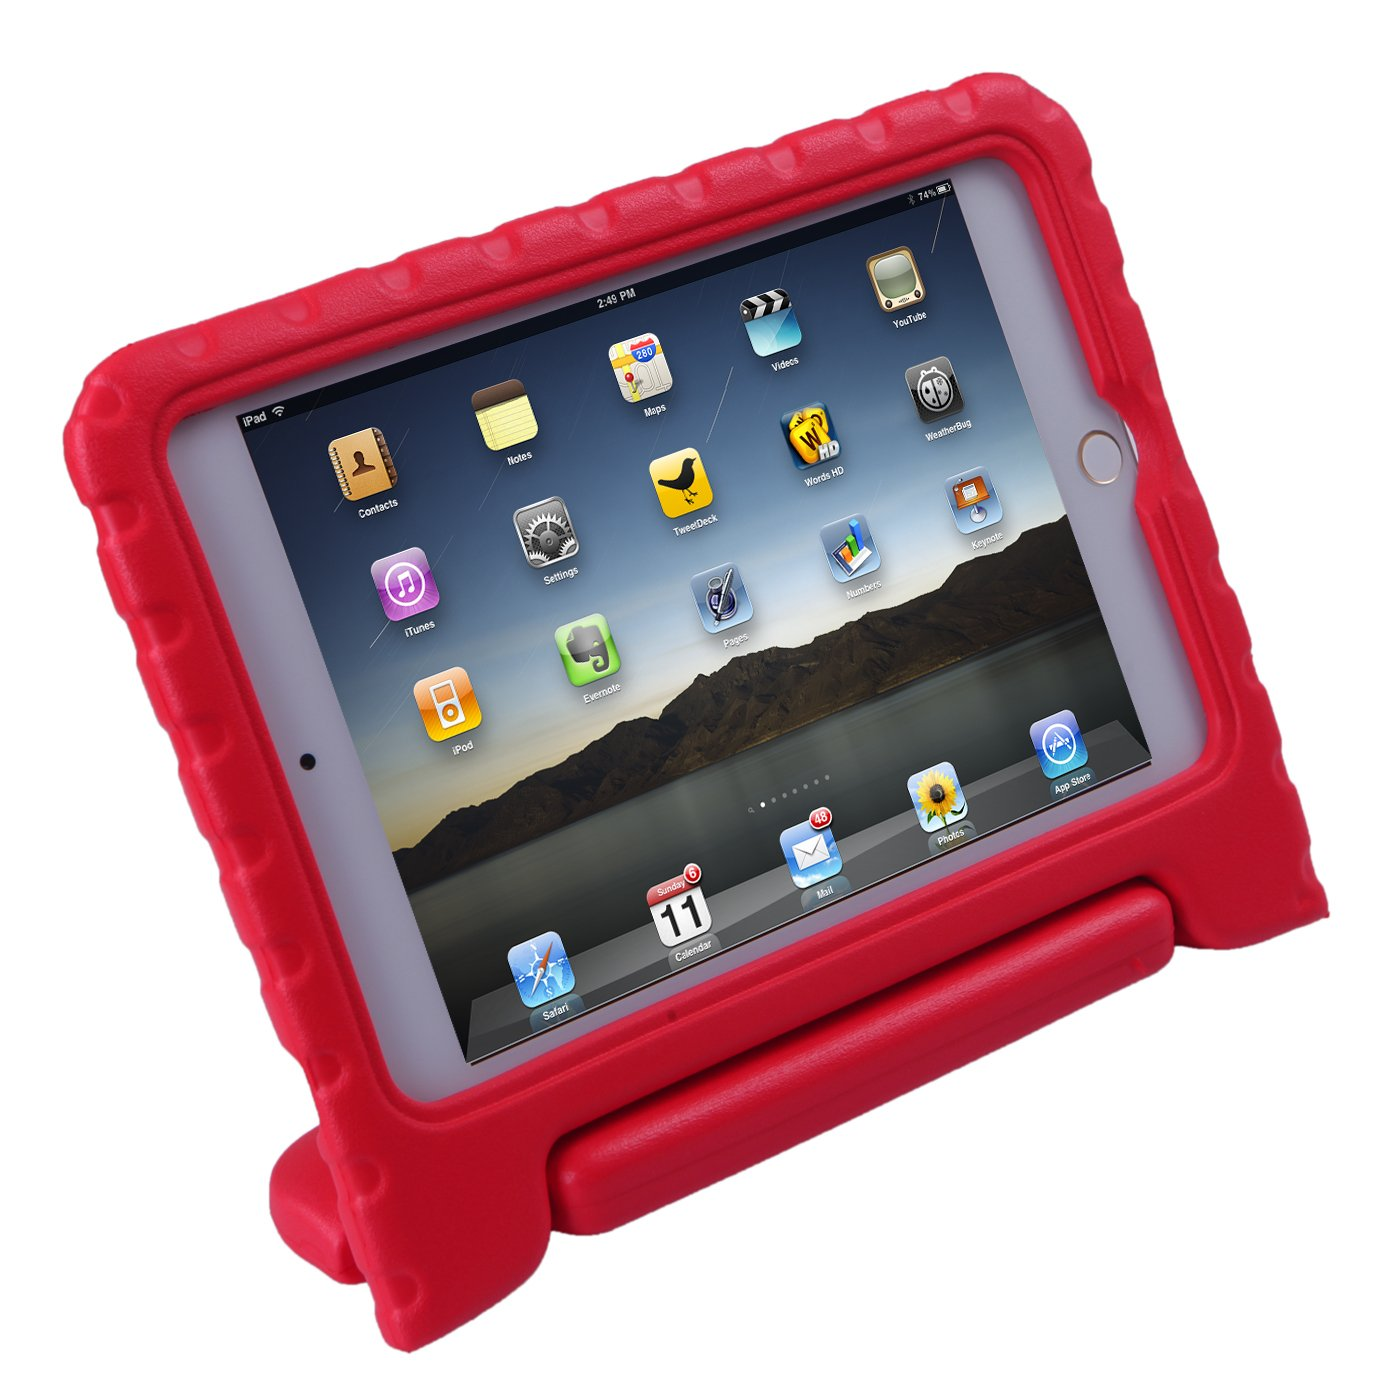 HDE Case for iPad Mini 4 - Shockproof Case for Kids with Stand Convertible Lightweight Cover for 4th Generation Apple iPad Mini 4-2015 Release (Red) HDE-D358 NEW15